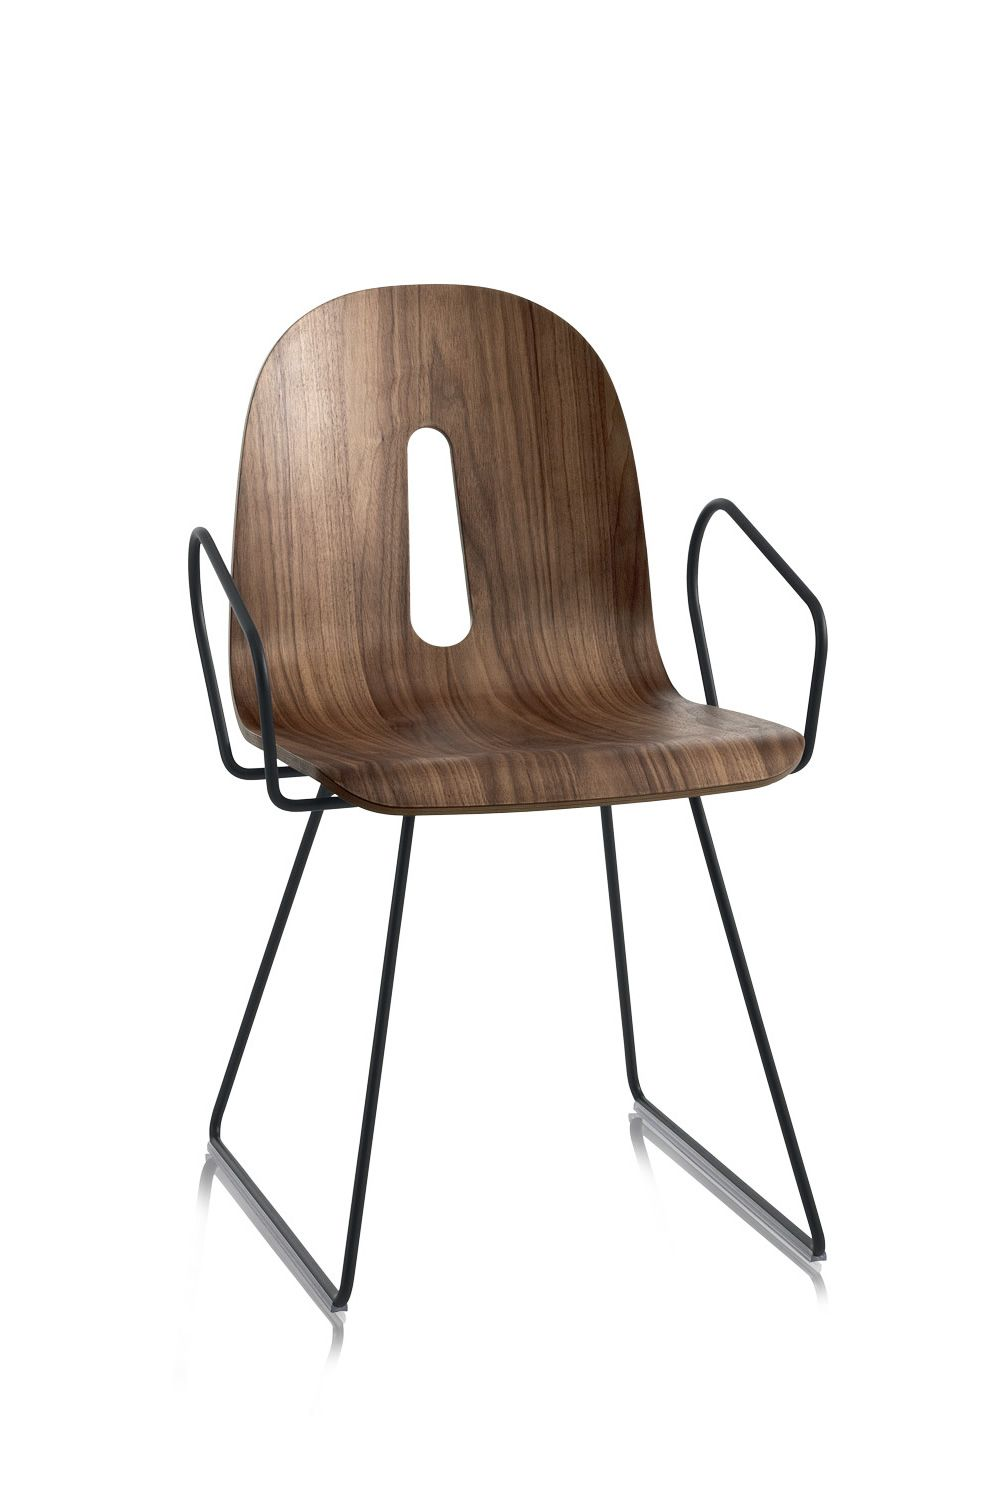 Gotham woody designer stuhl chairs more aus metall mit for Designer stuhl metall